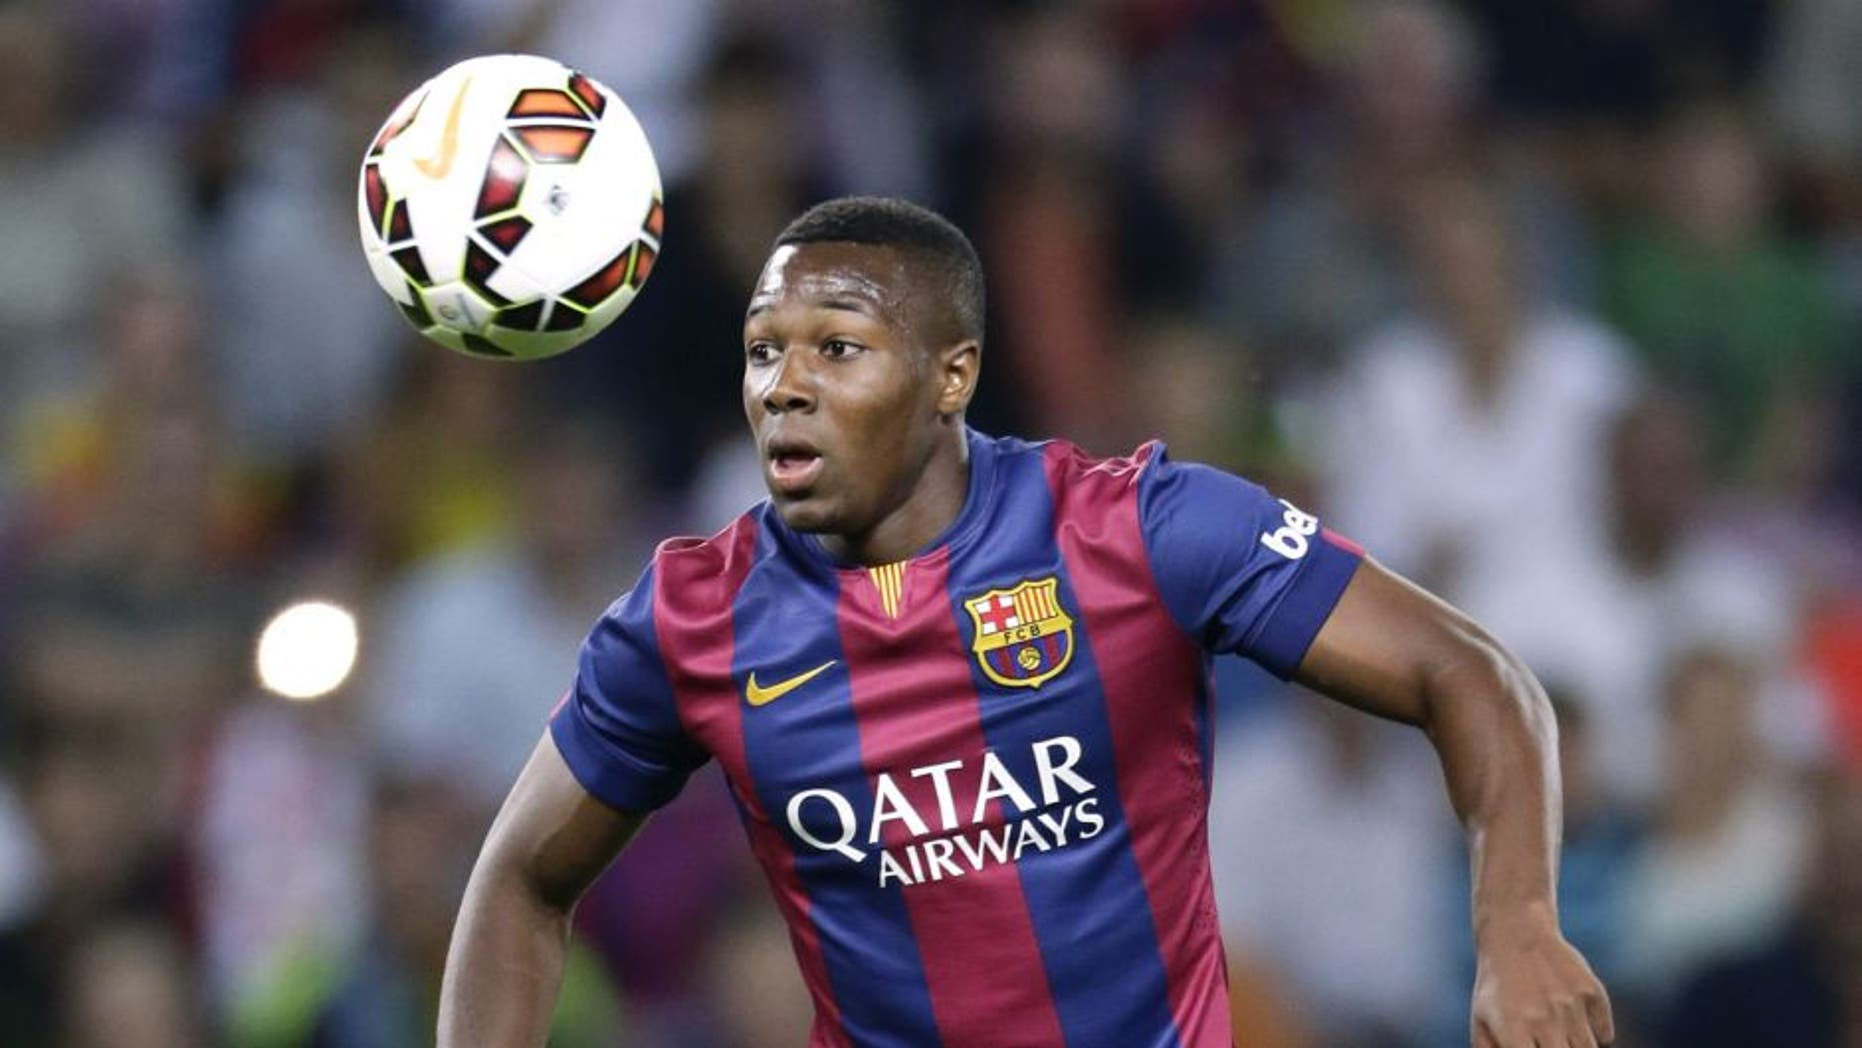 Adama Traore of FC Barcelona during the friendly match between Napoli and FC Barcelona at Stade de Geneve on august 6, 2014 in Geneva, Switzerland(Photo by VI Images via Getty Images)